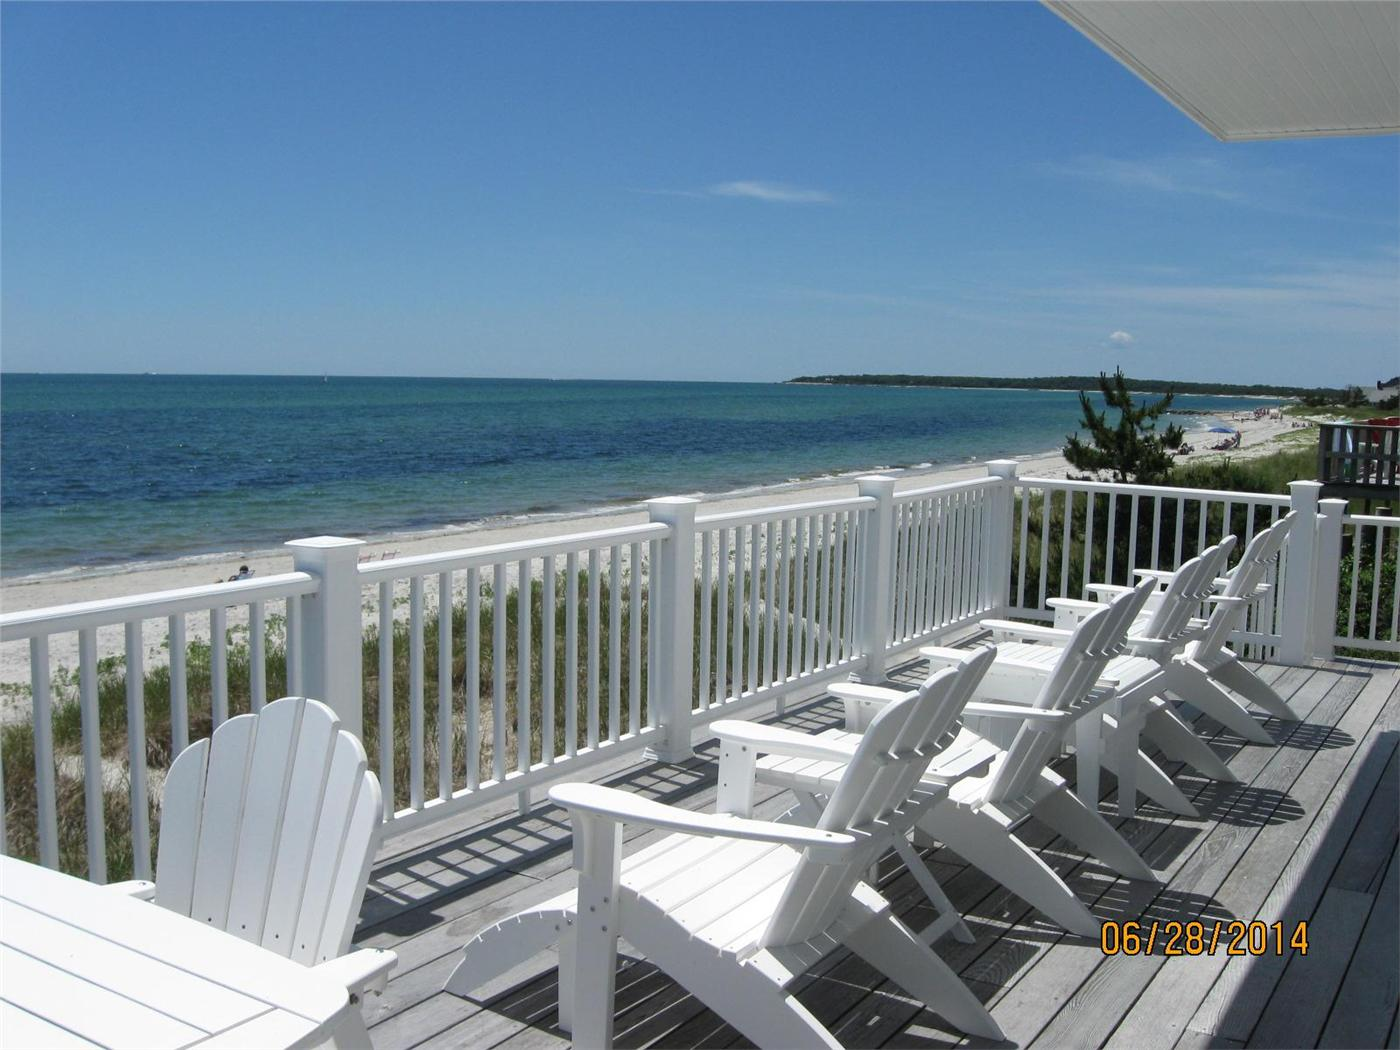 yarmouth vacation rental home in cape cod ma 02673 warm water id 11033